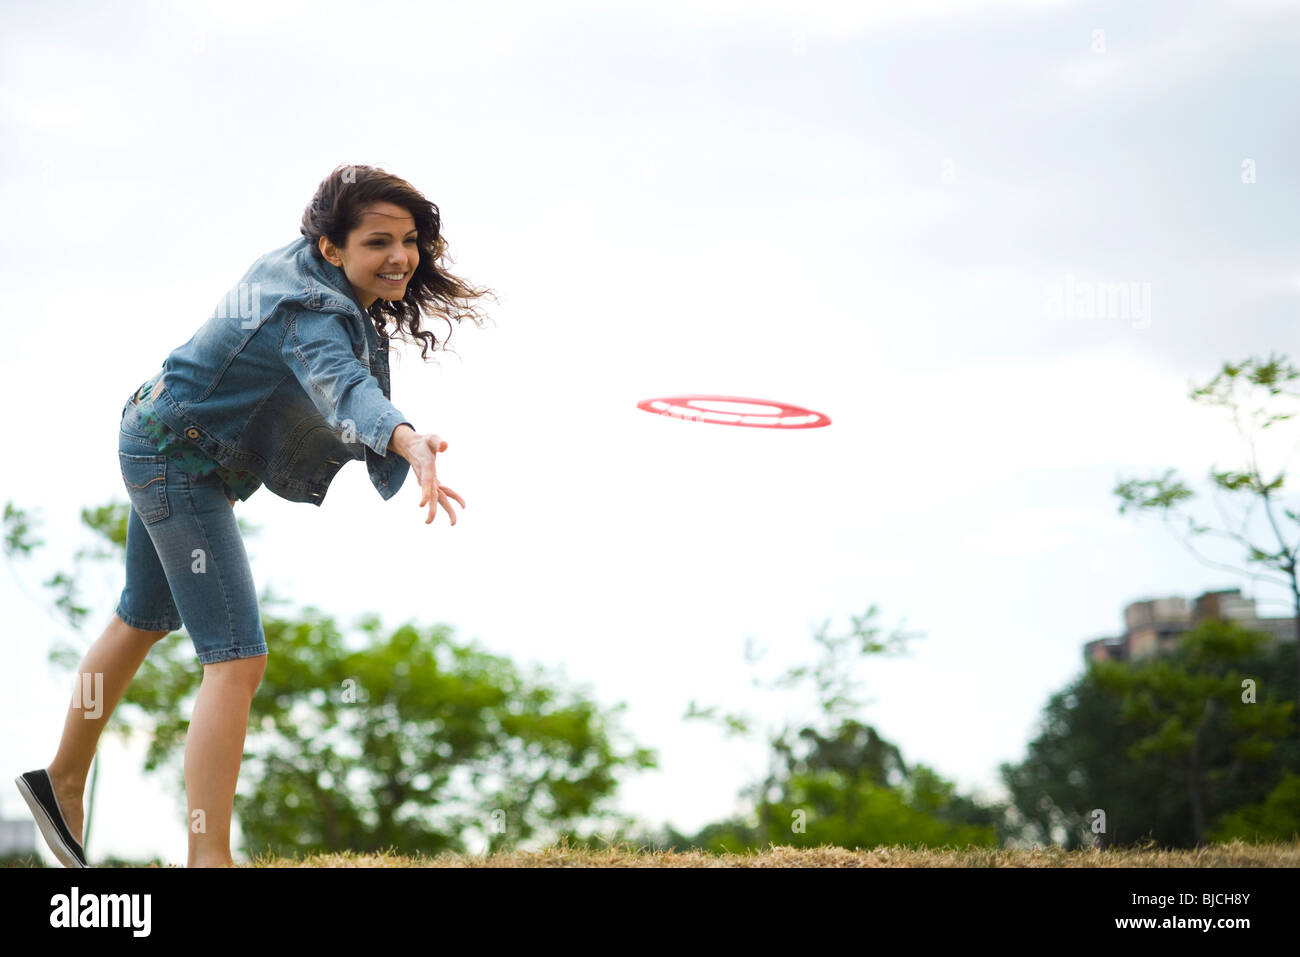 Woman throwing flying disc at park - Stock Image